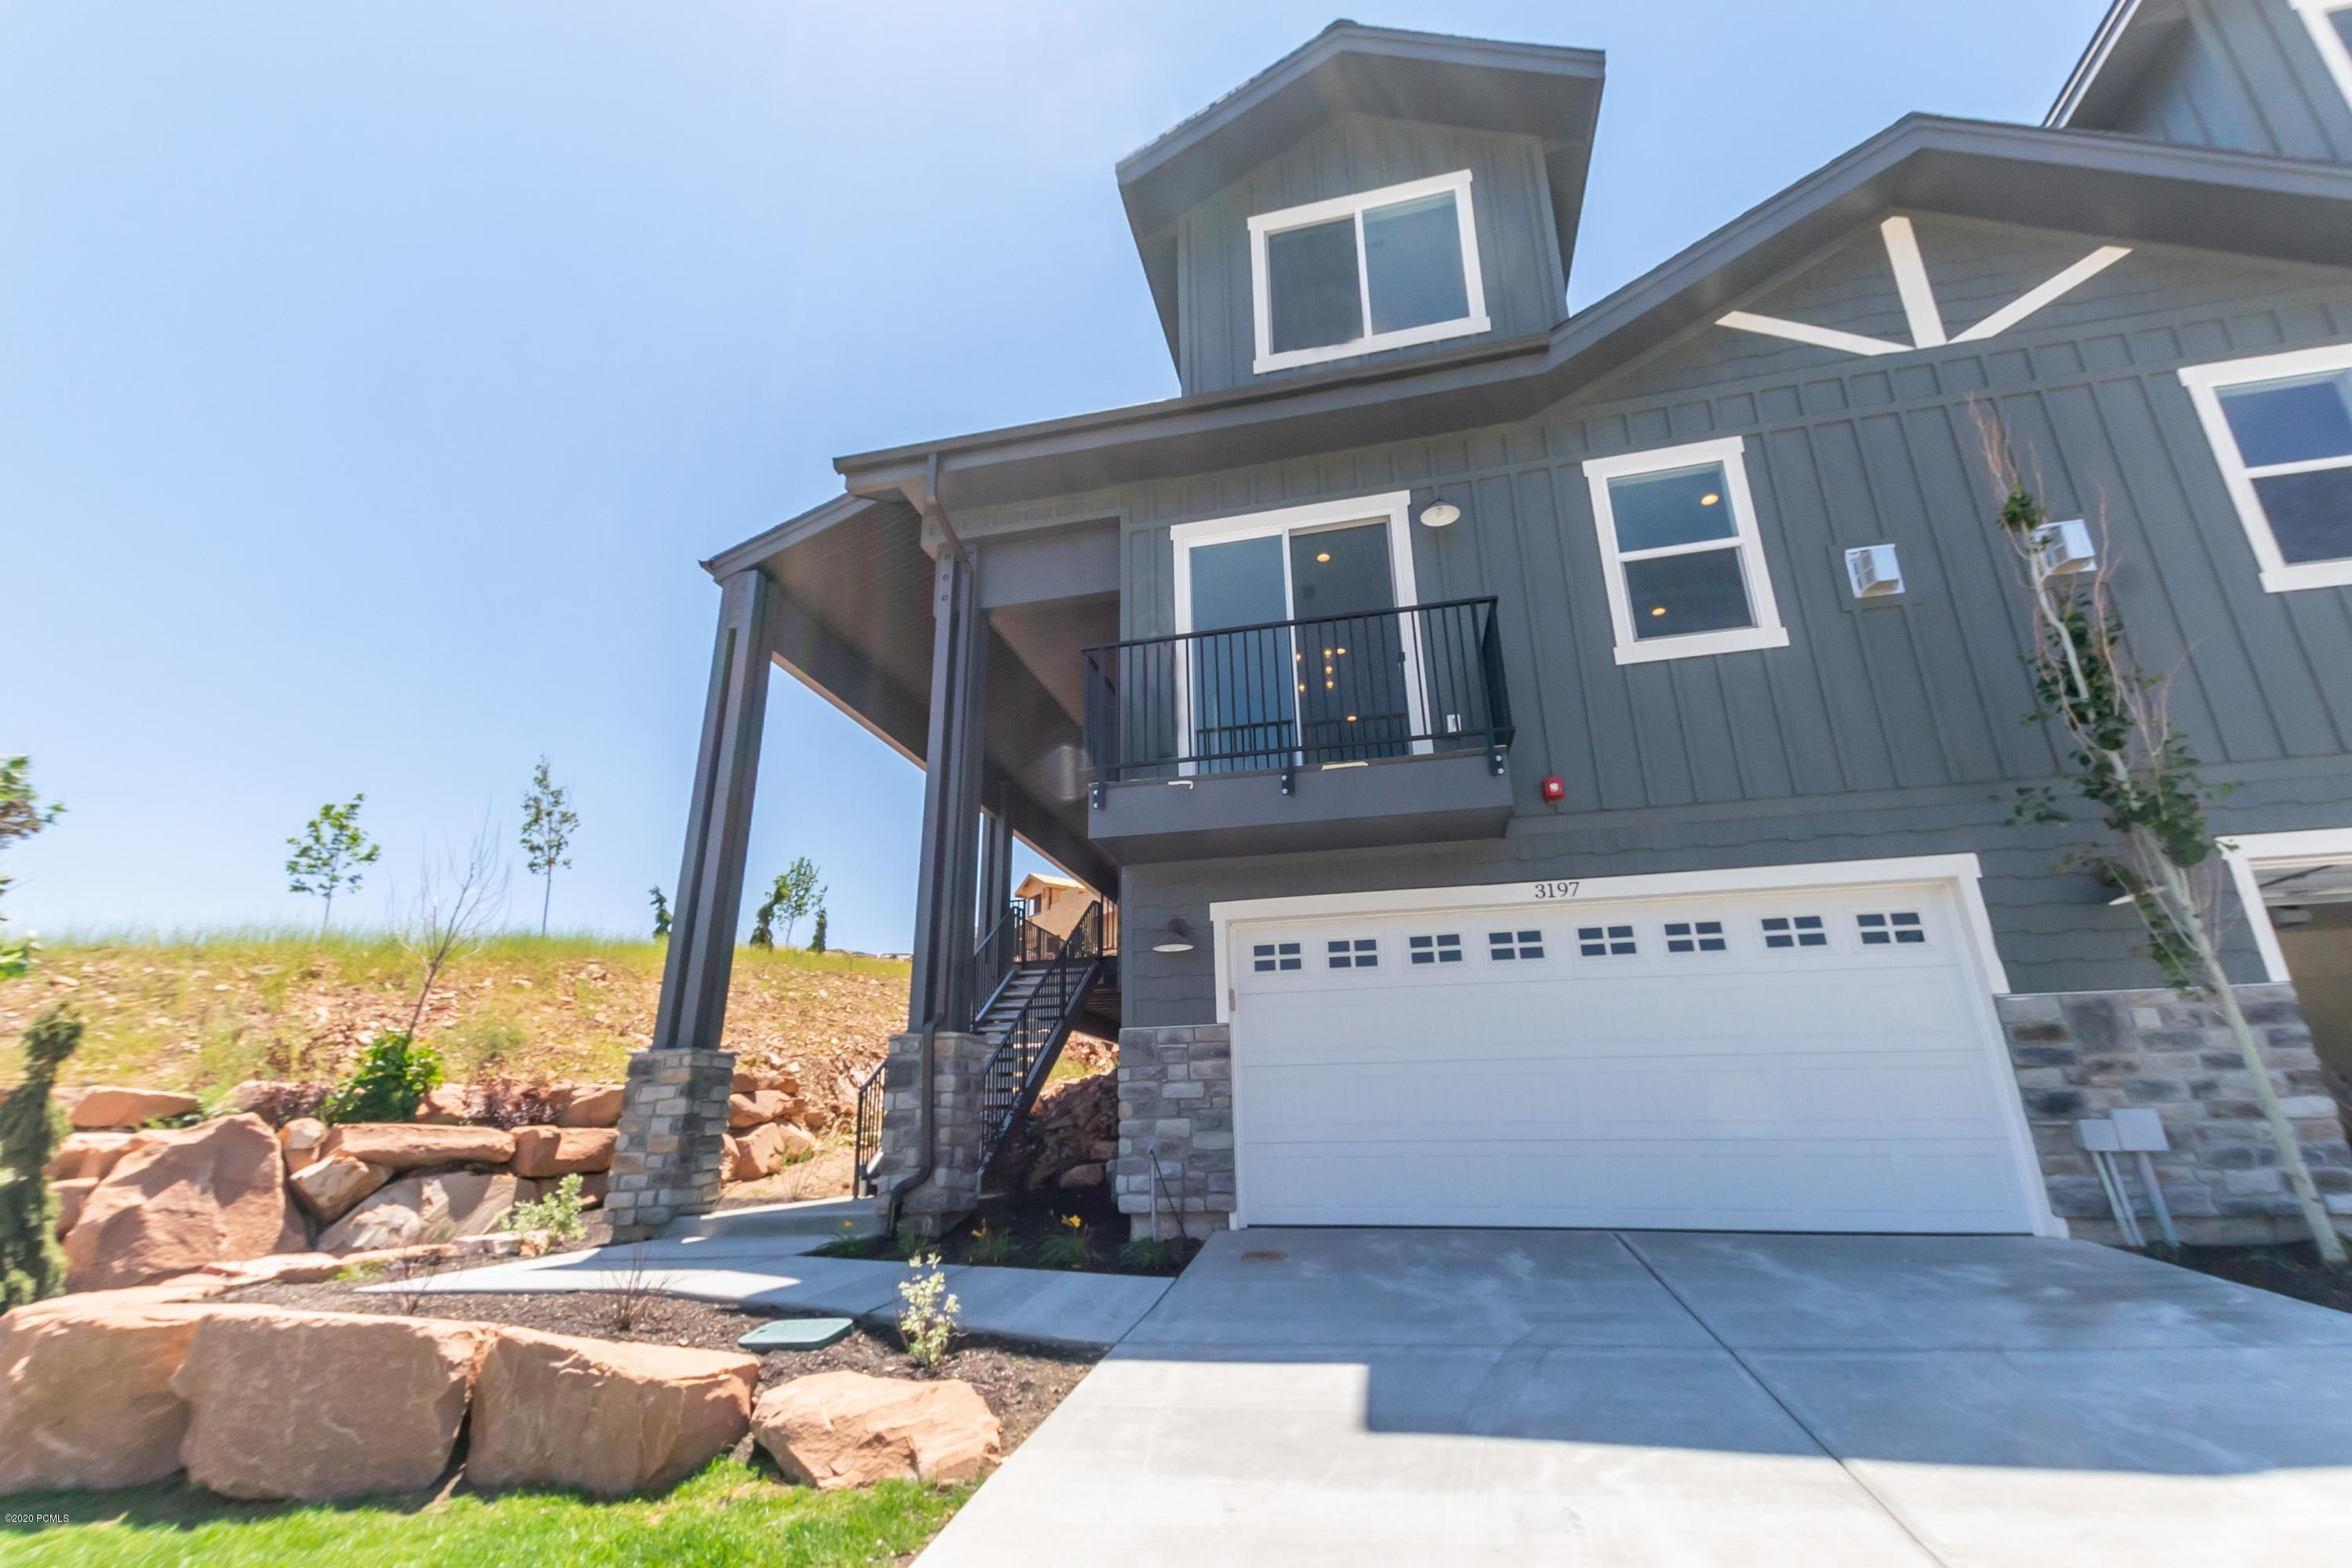 3335 Santa Fe Road, Park City, Utah 84098, 3 Bedrooms Bedrooms, ,3 BathroomsBathrooms,Condominium,For Sale,Santa Fe,12003899